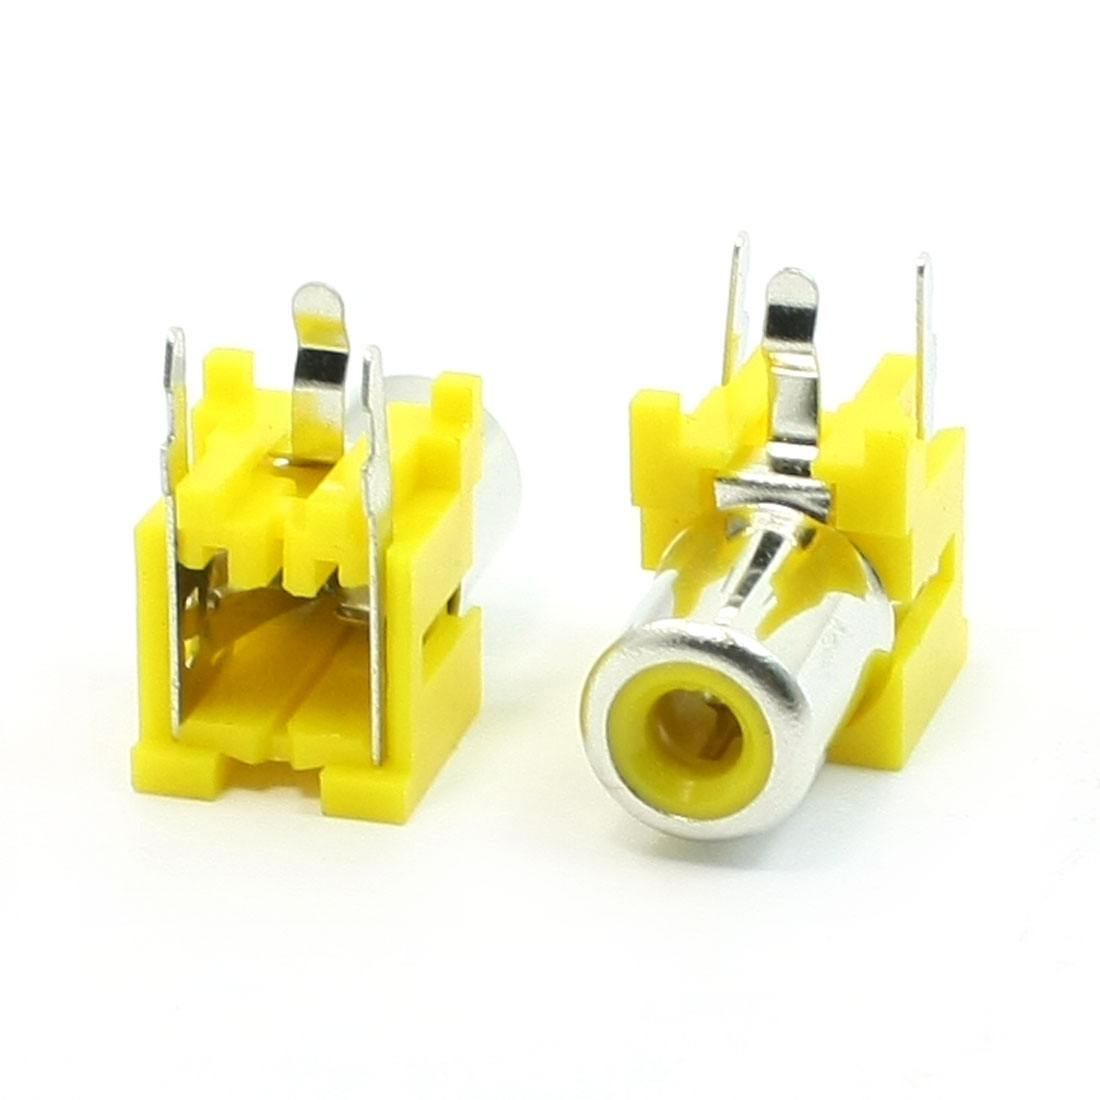 2 Pcs 3 Pins Female Outlet Jack Connector AV RCA Socket Yellow